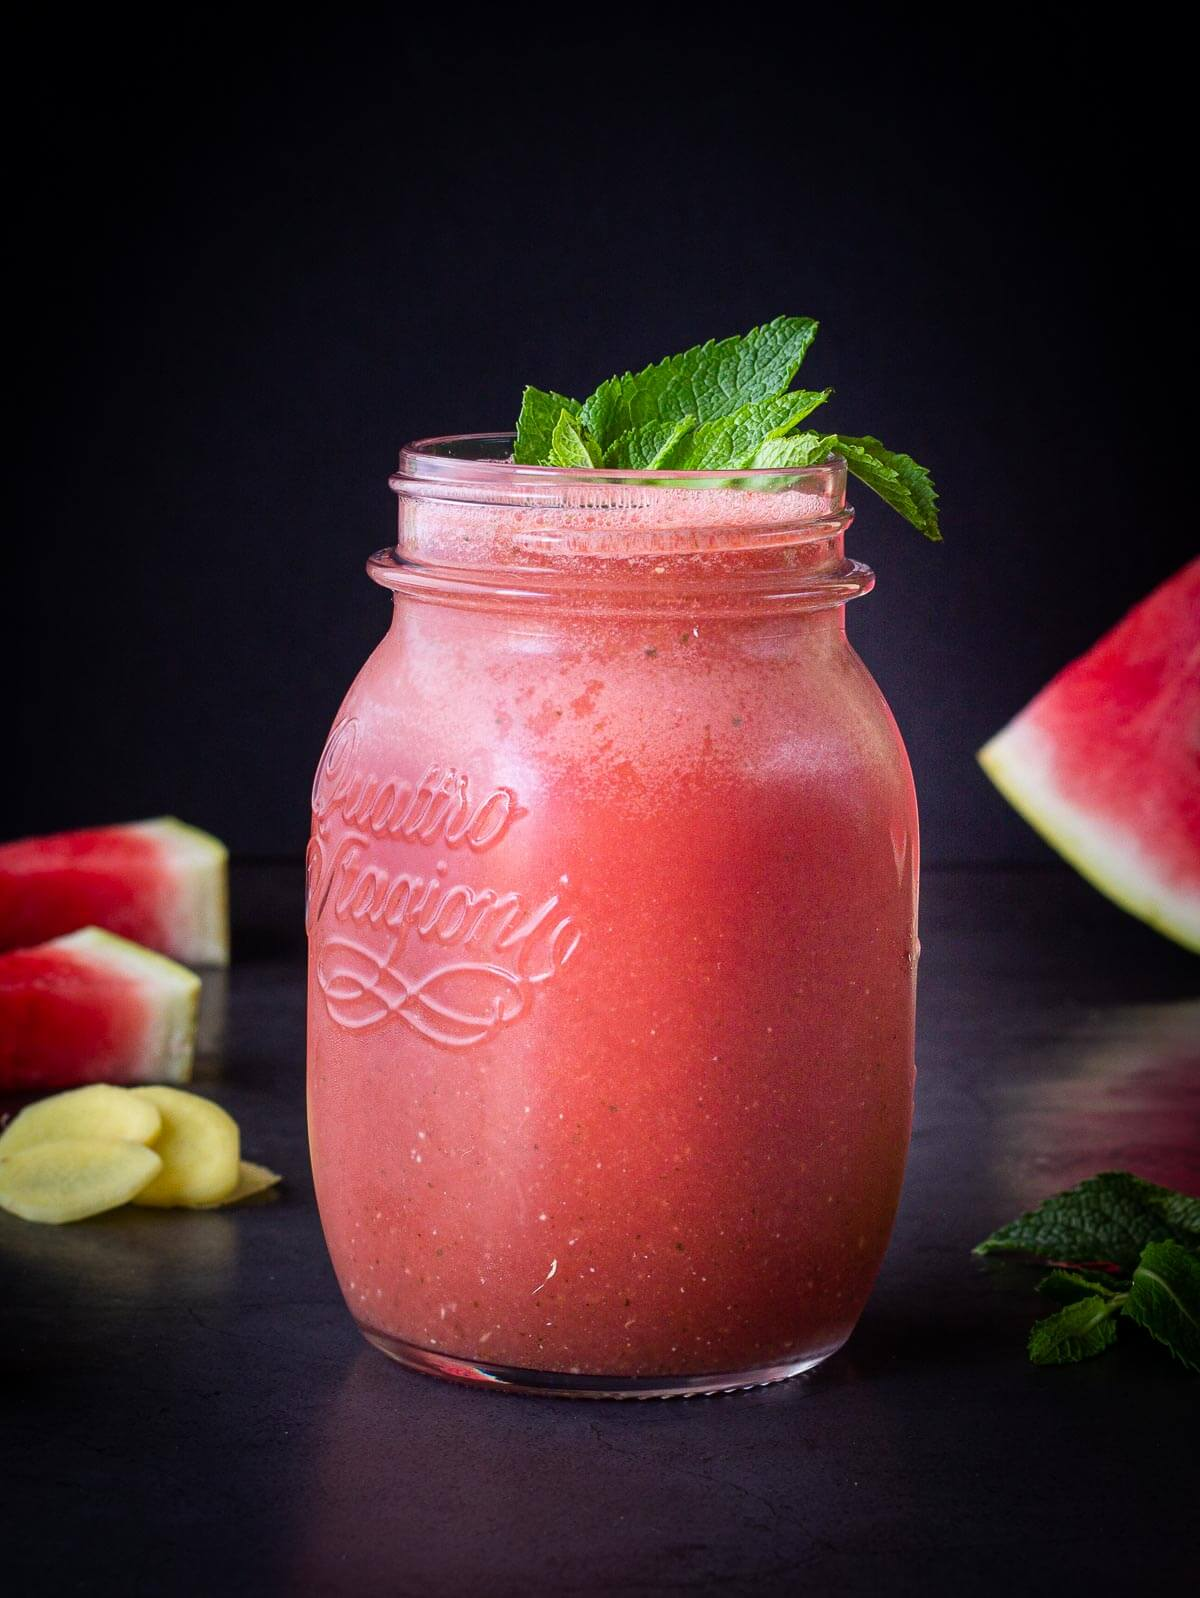 Watermelon Smoothie in glass